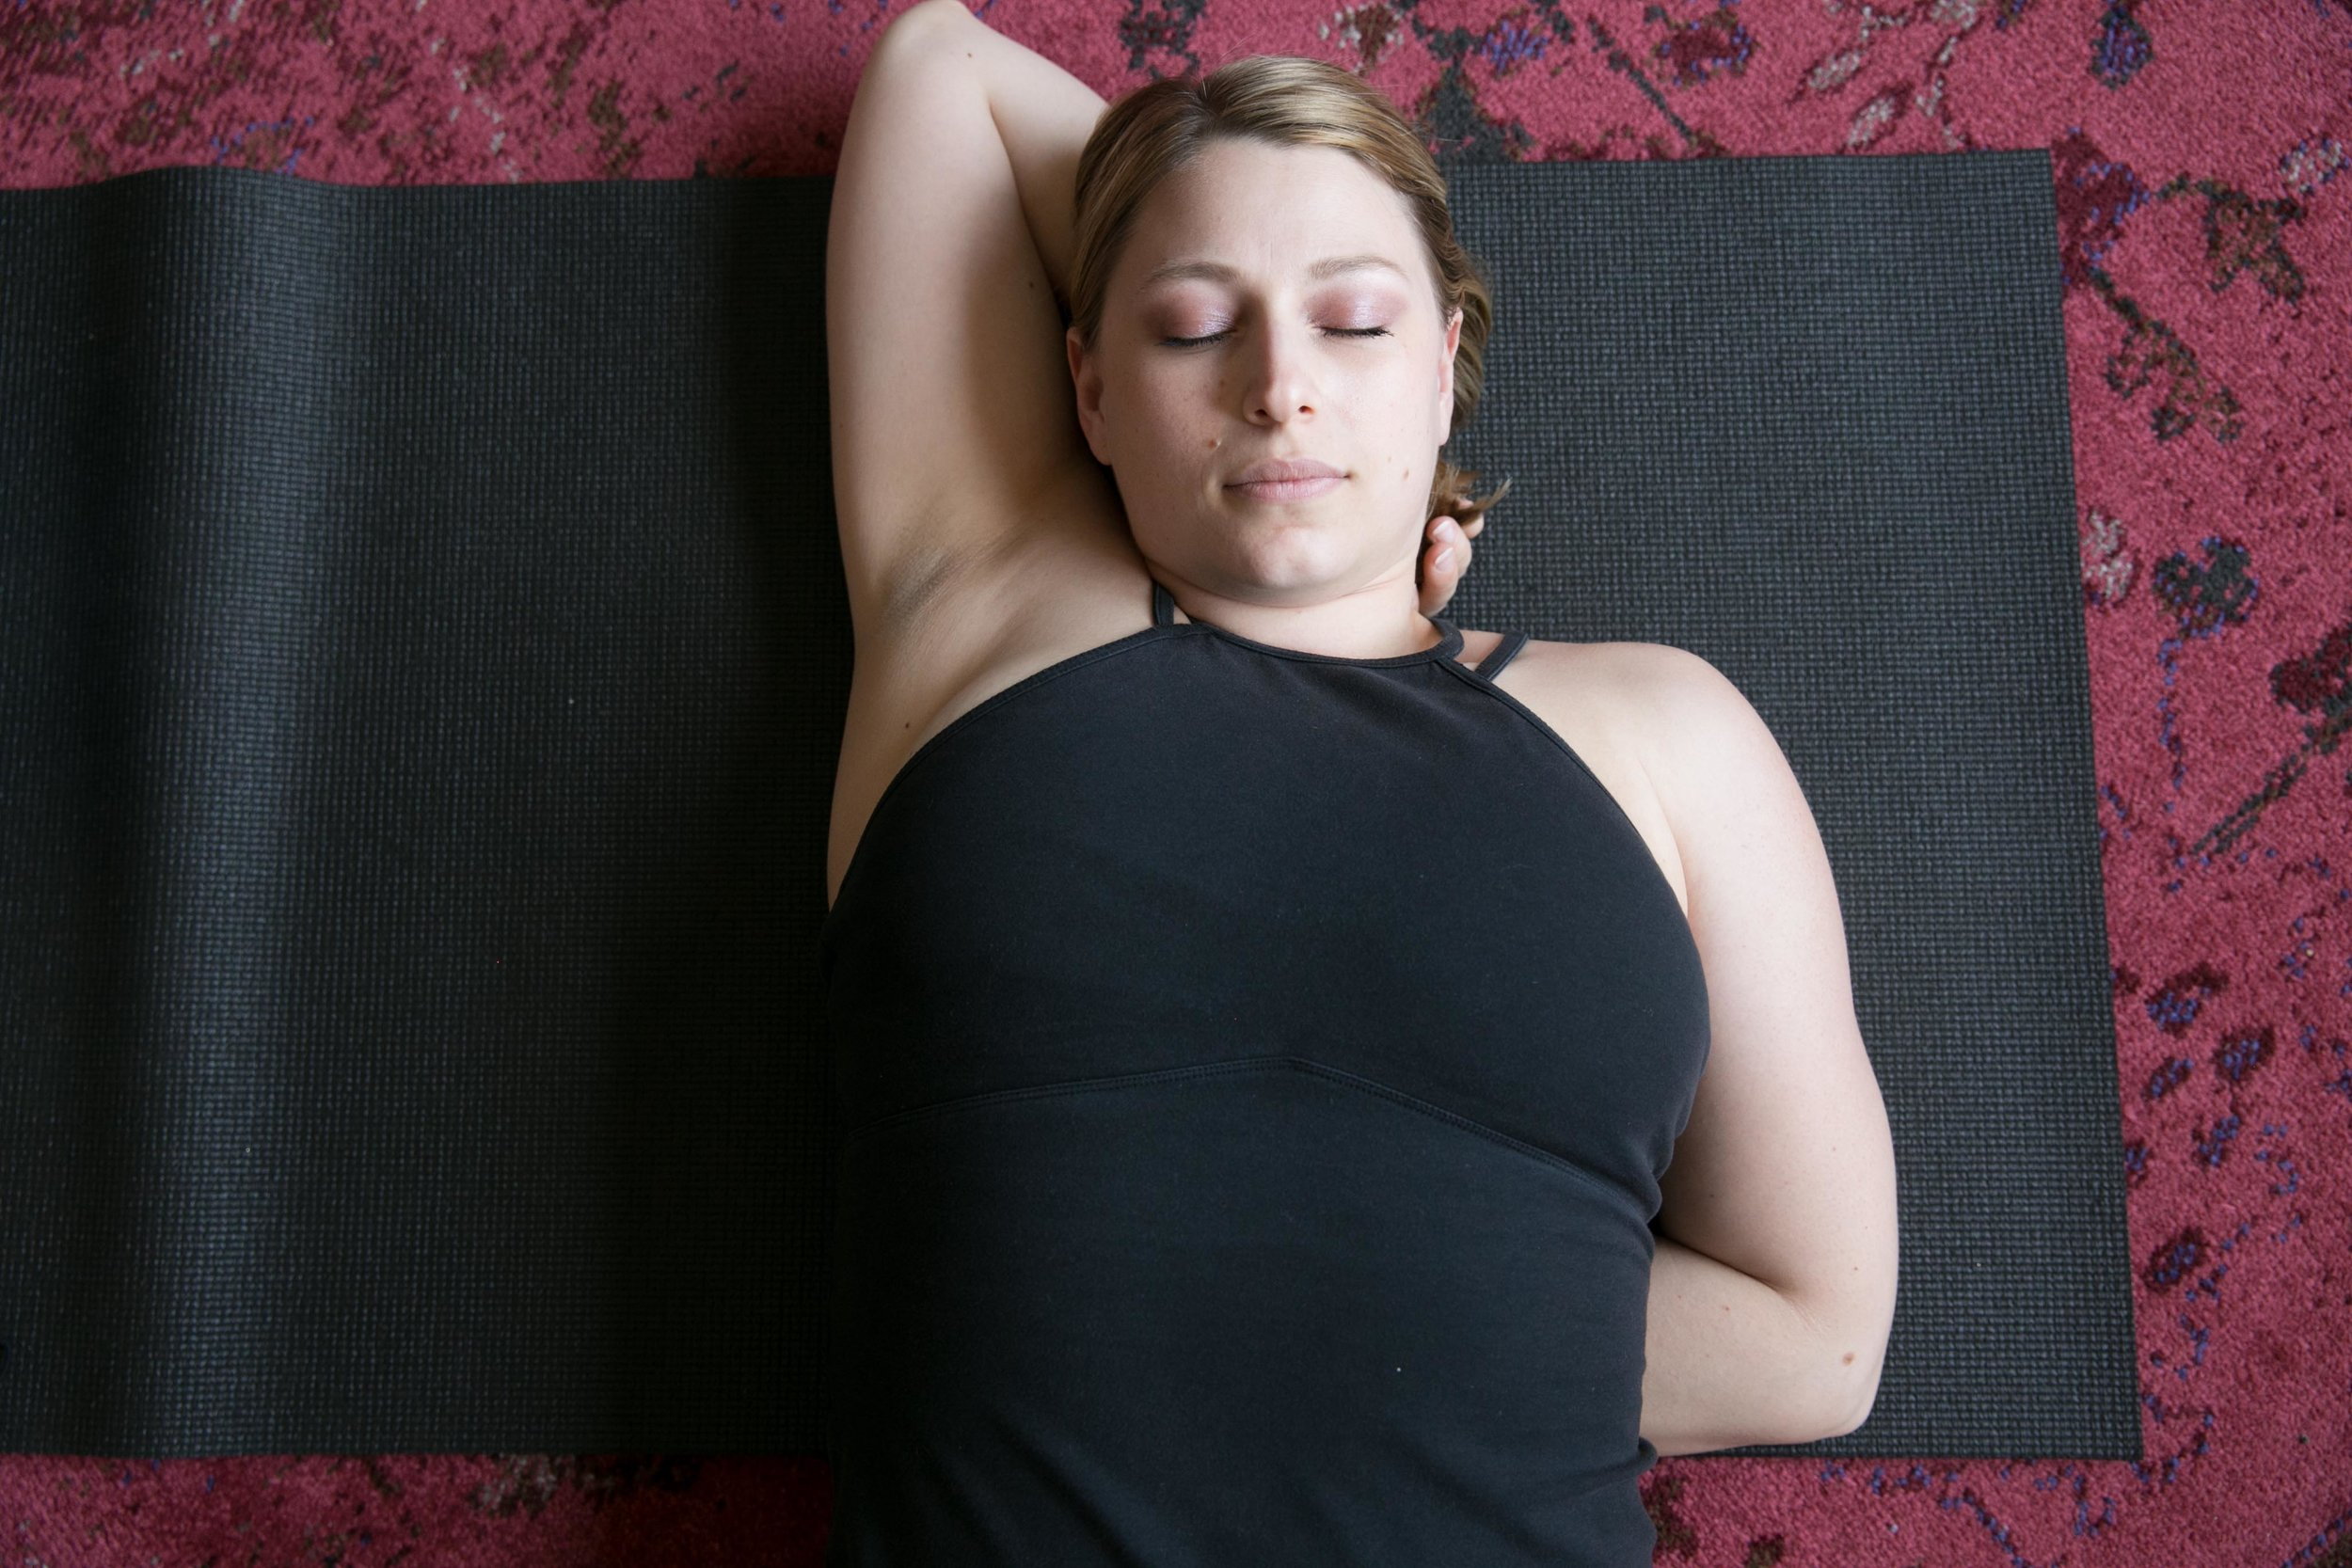 Reclining gomukhasana - Roll over onto your back (on top of your lower forearm.) Use your top hand as a pillow, and keep your feet flat on the ground at first to support your low back. Stay until you feel the tension in your bottom shoulder beginning to melt.To go deeper: stretch your legs out straight. Challenge yourself:deepen your breath without tensing your neck and jaw.